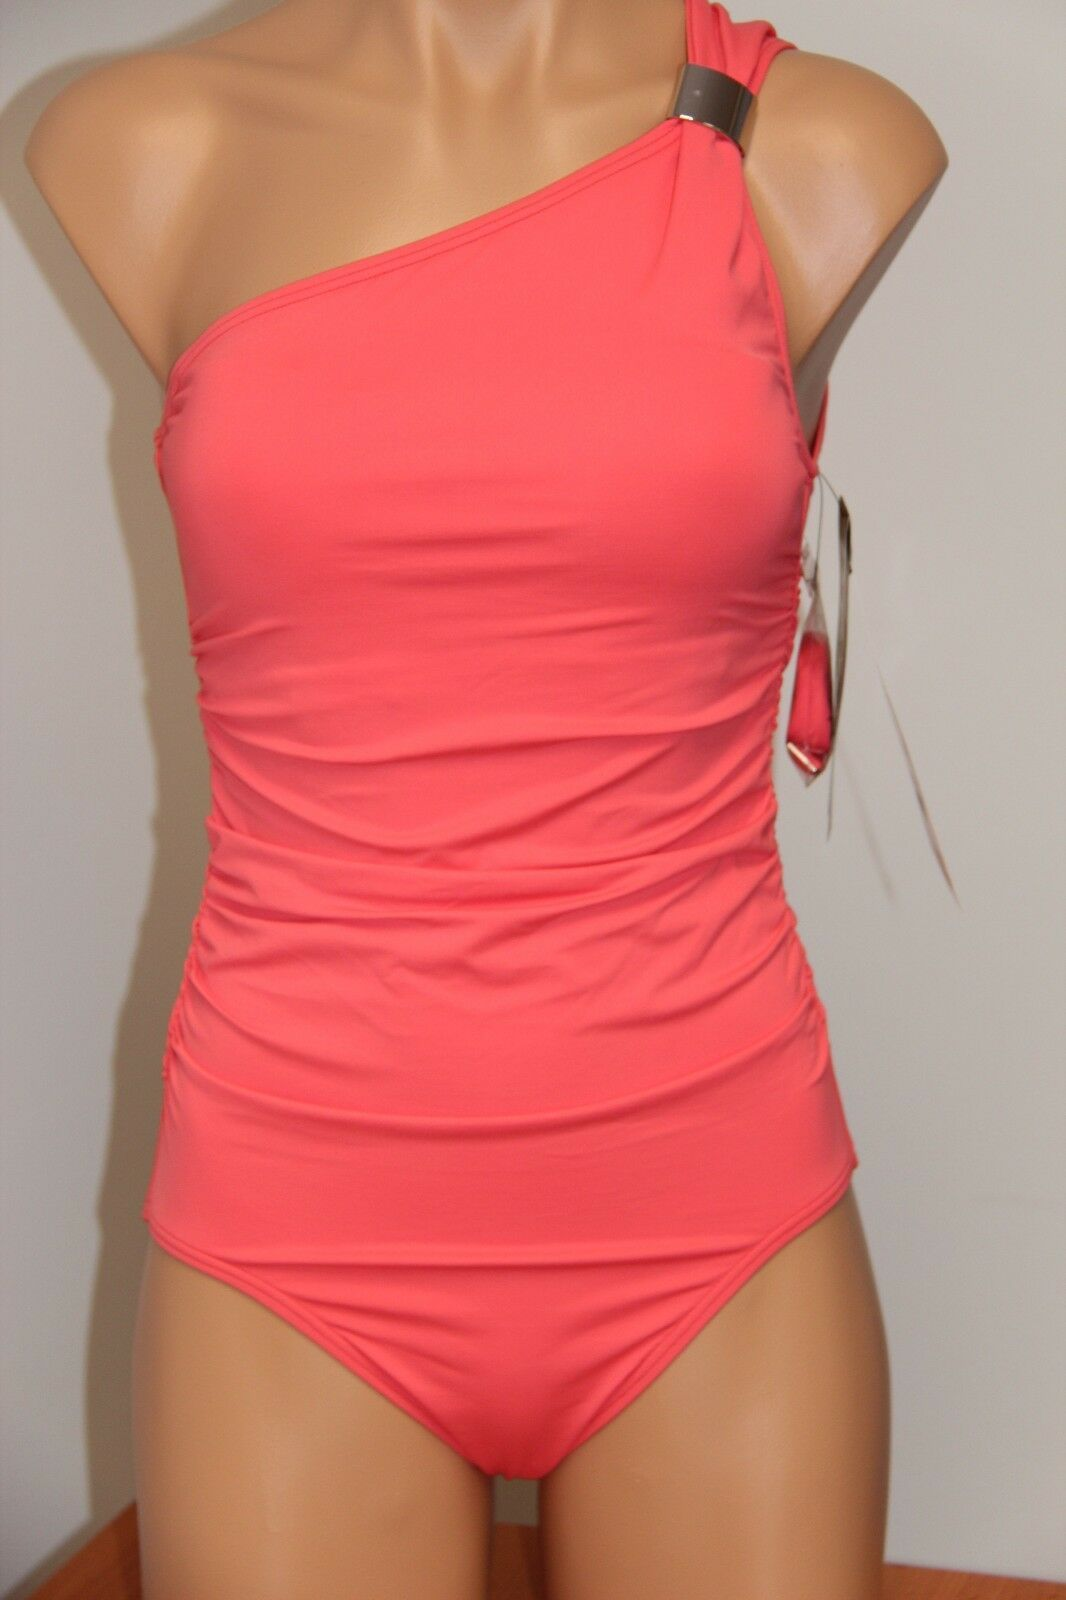 New Coco Reef Swimsuit Bikini 1 one  piece Sz 8 32D cup one shoulder cora lion